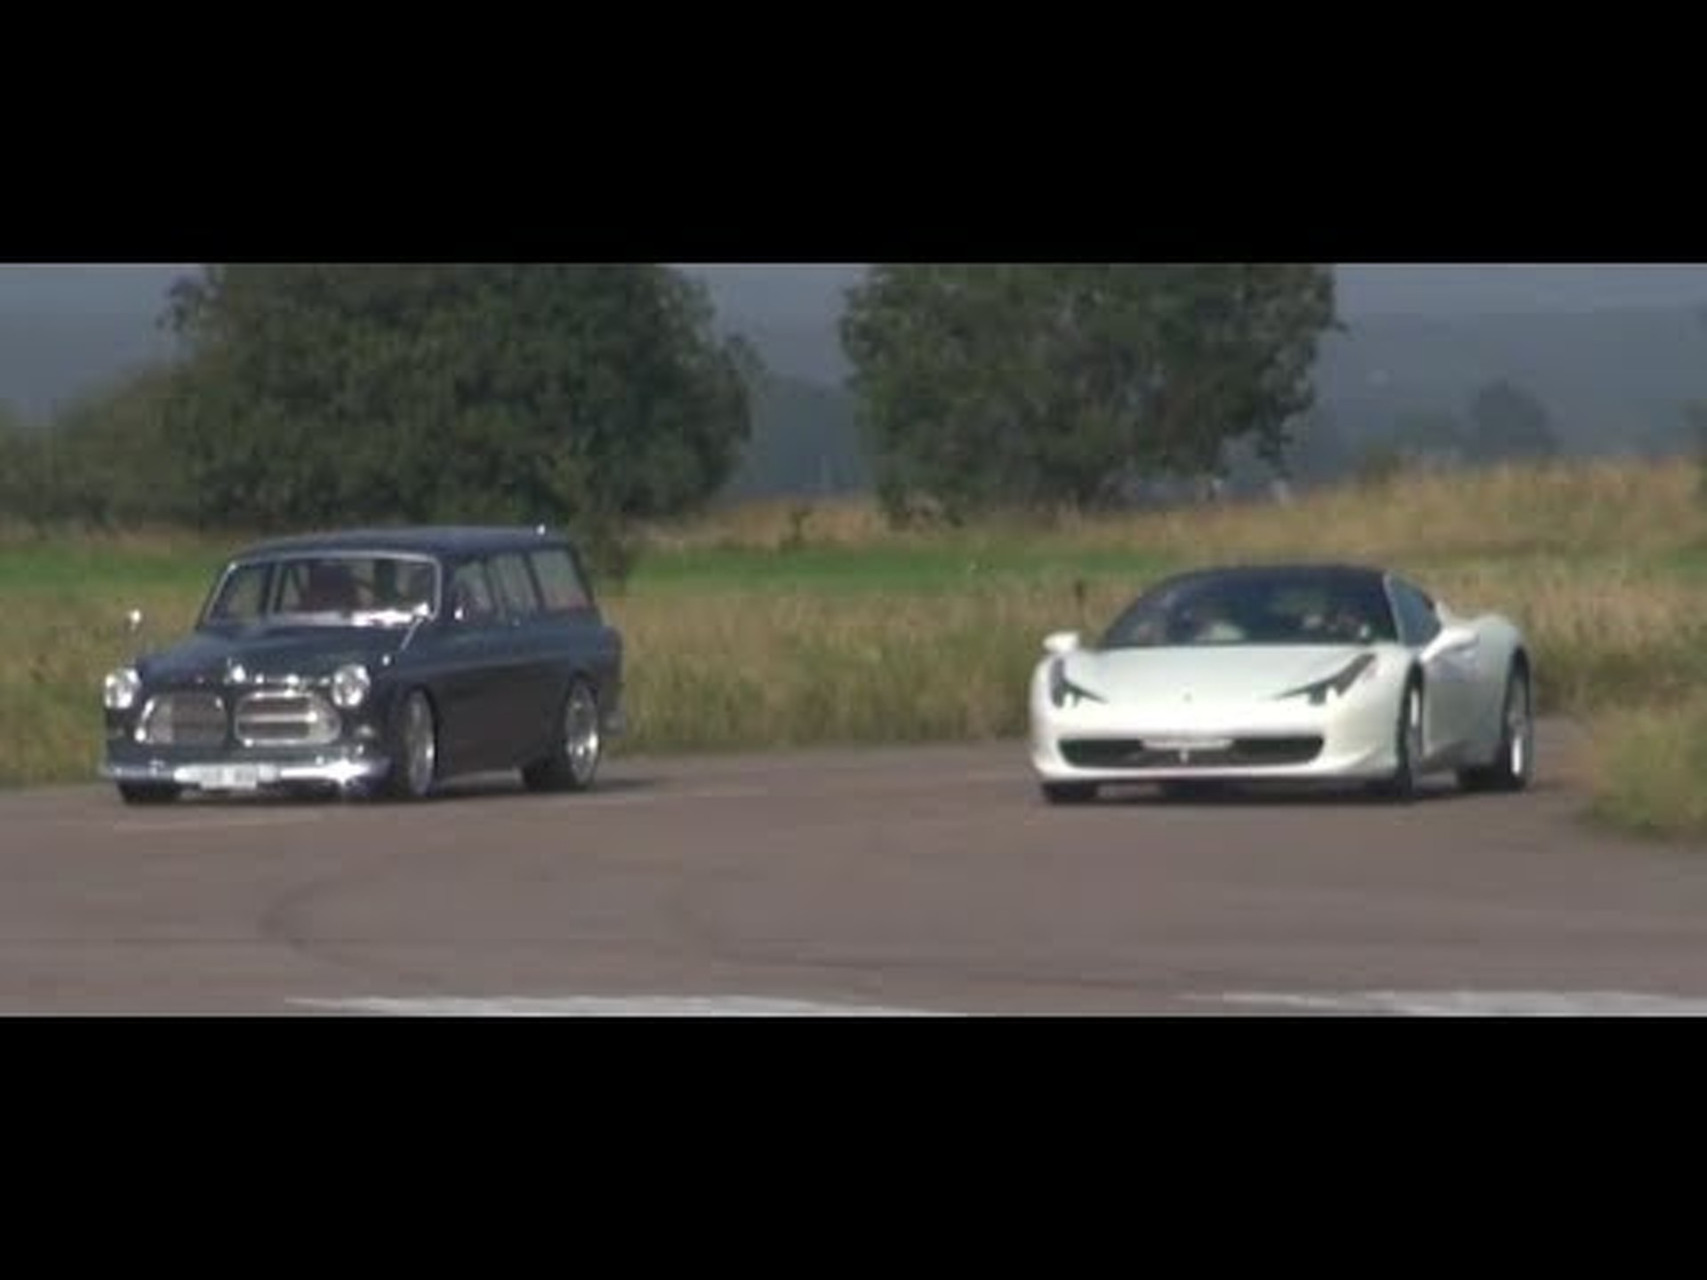 Ferrari 458 vs Volvo Amazon '67